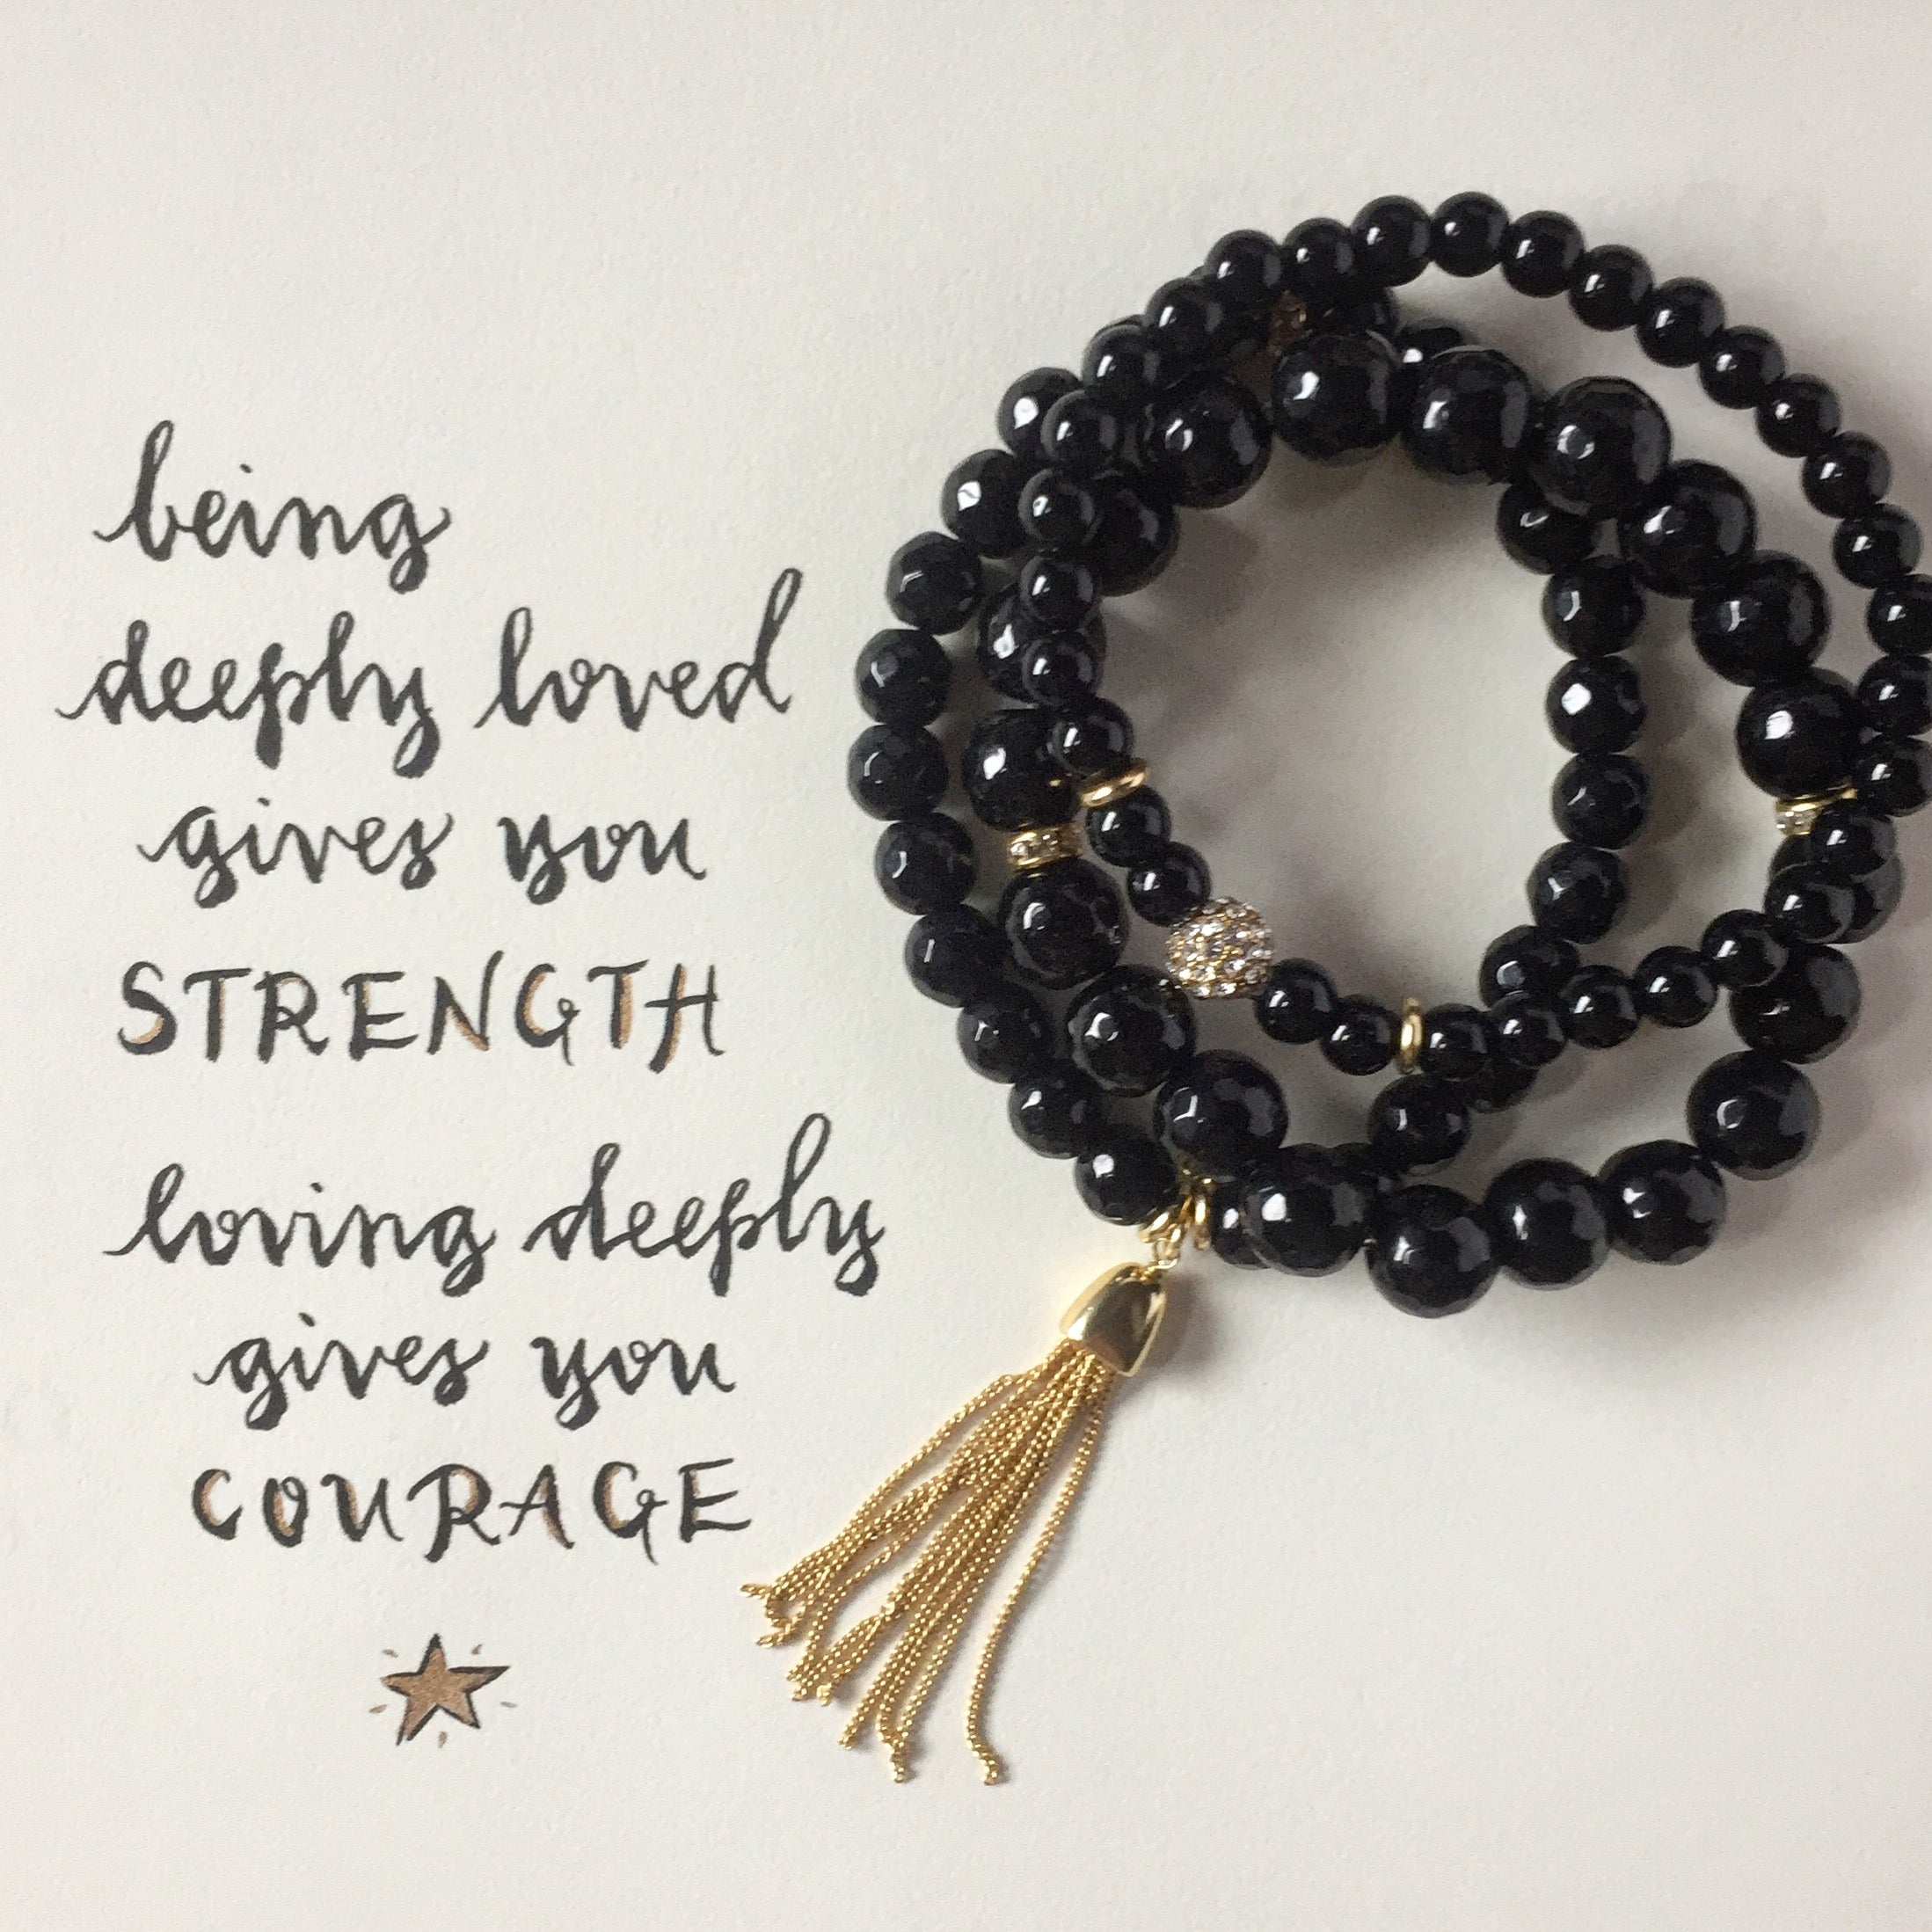 #SequinSayings - Strength vs. Courage